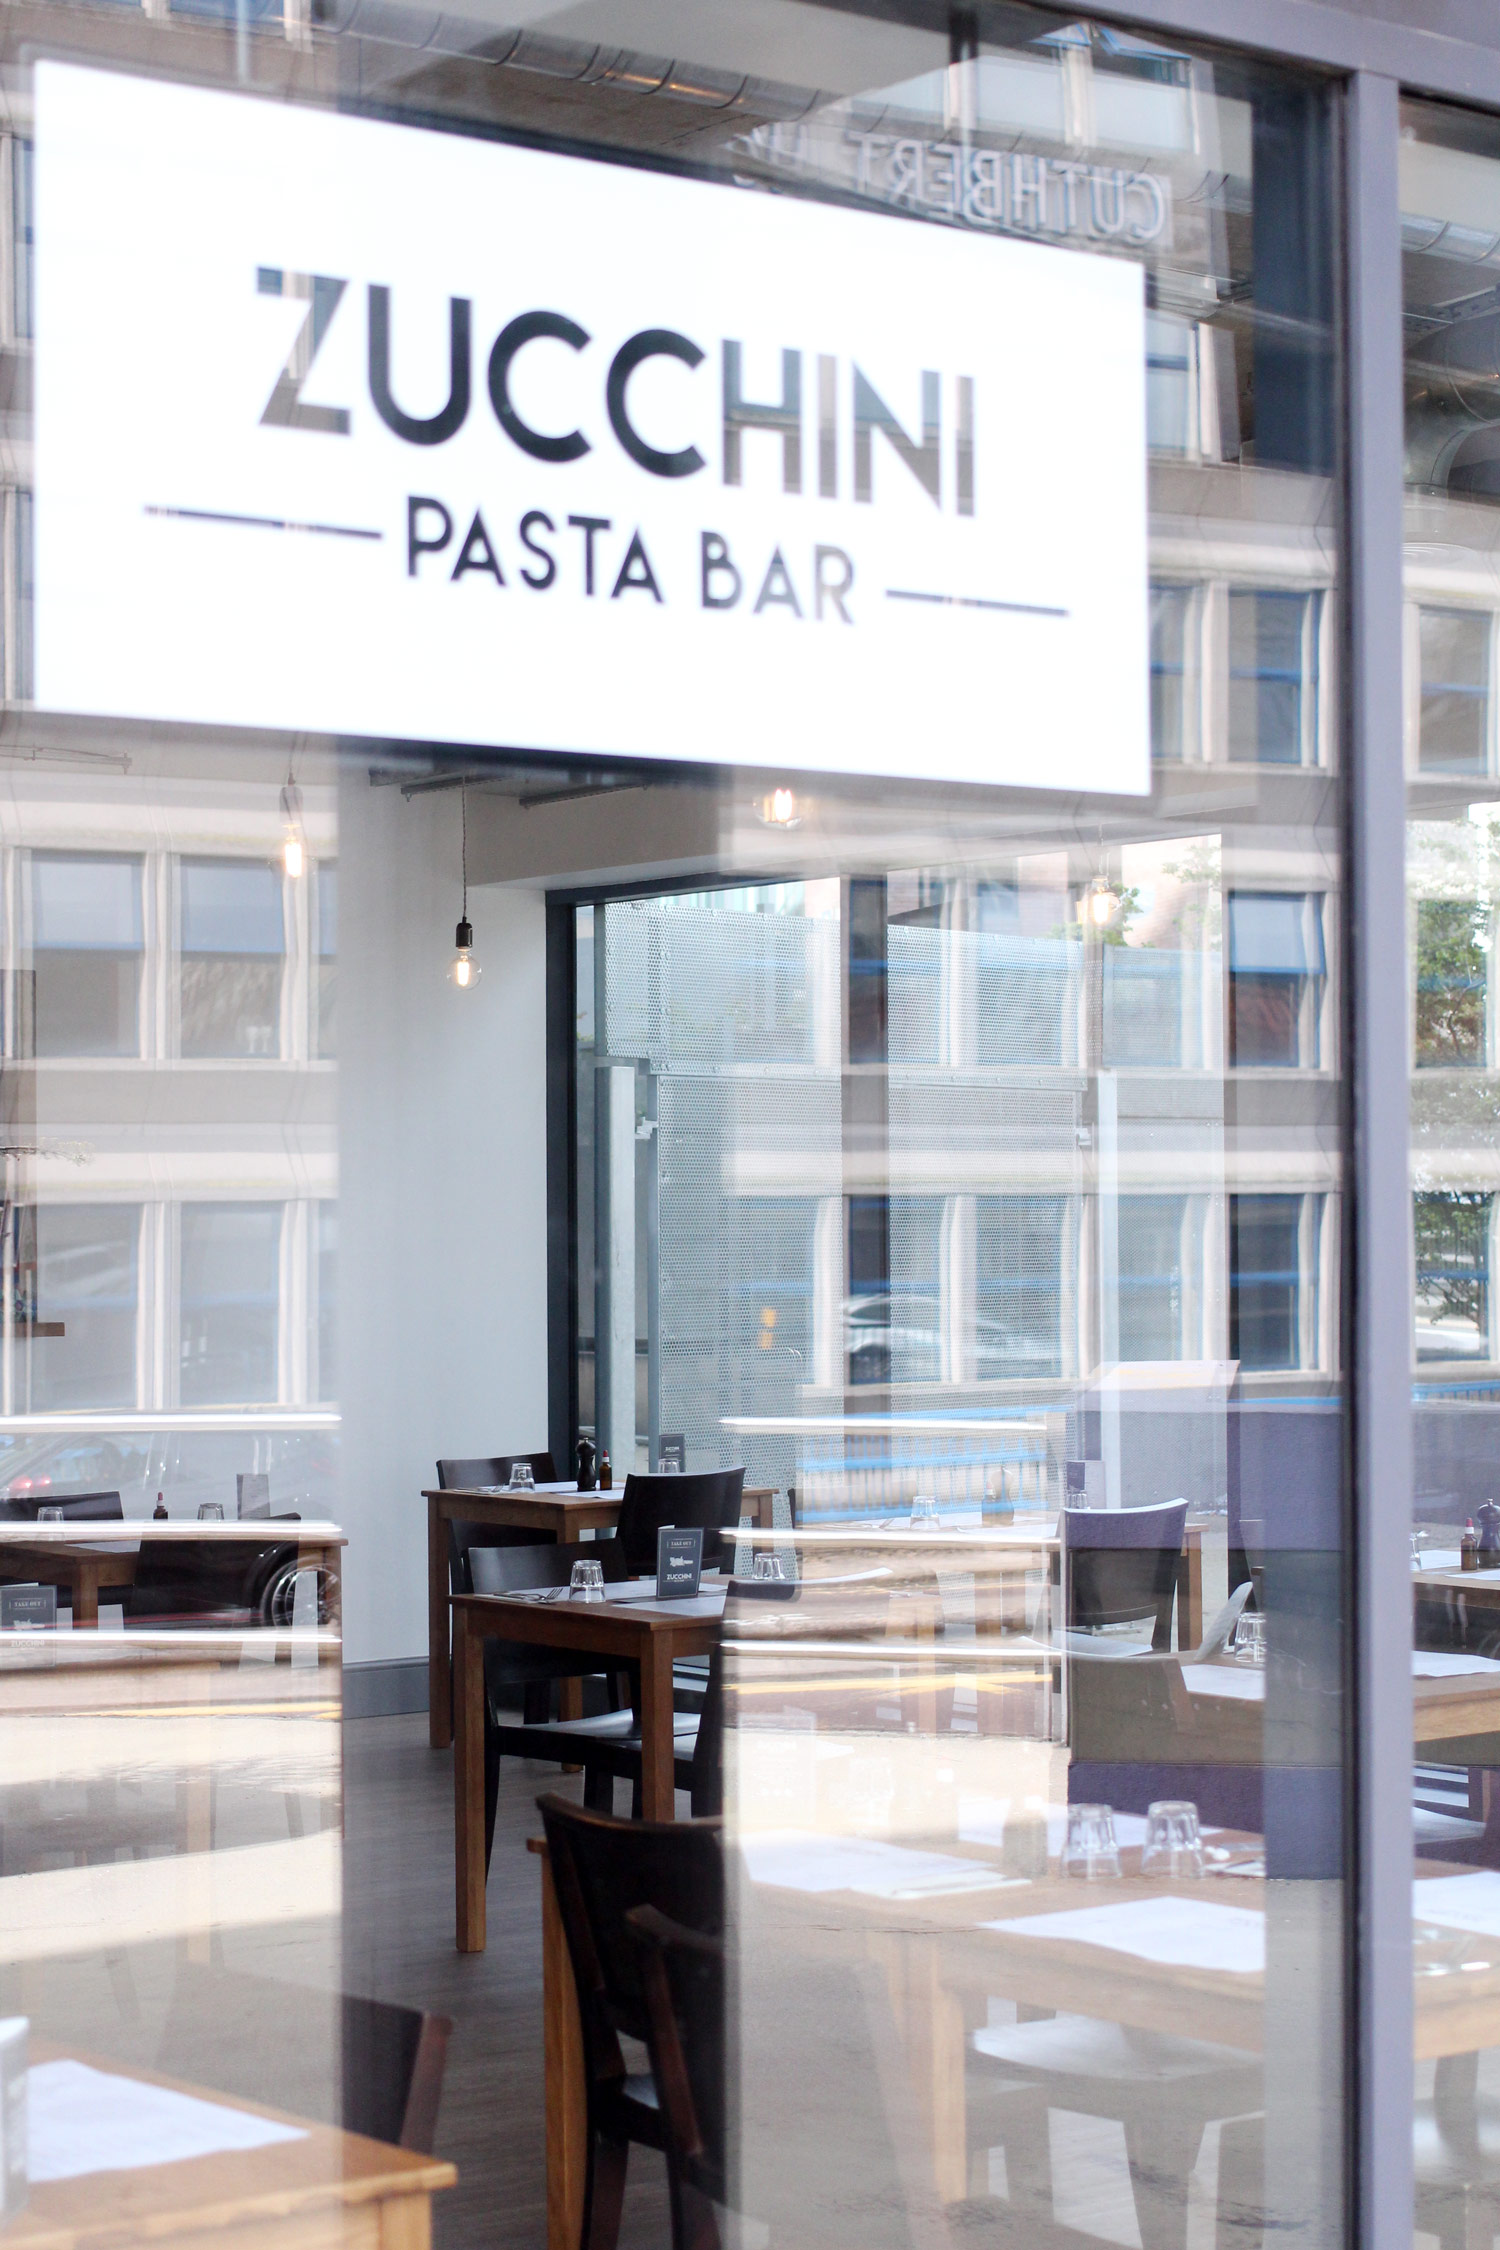 zucchini-pasta-bar-newcastle-NE1-restaurant-review-north-east-food-blogger-15